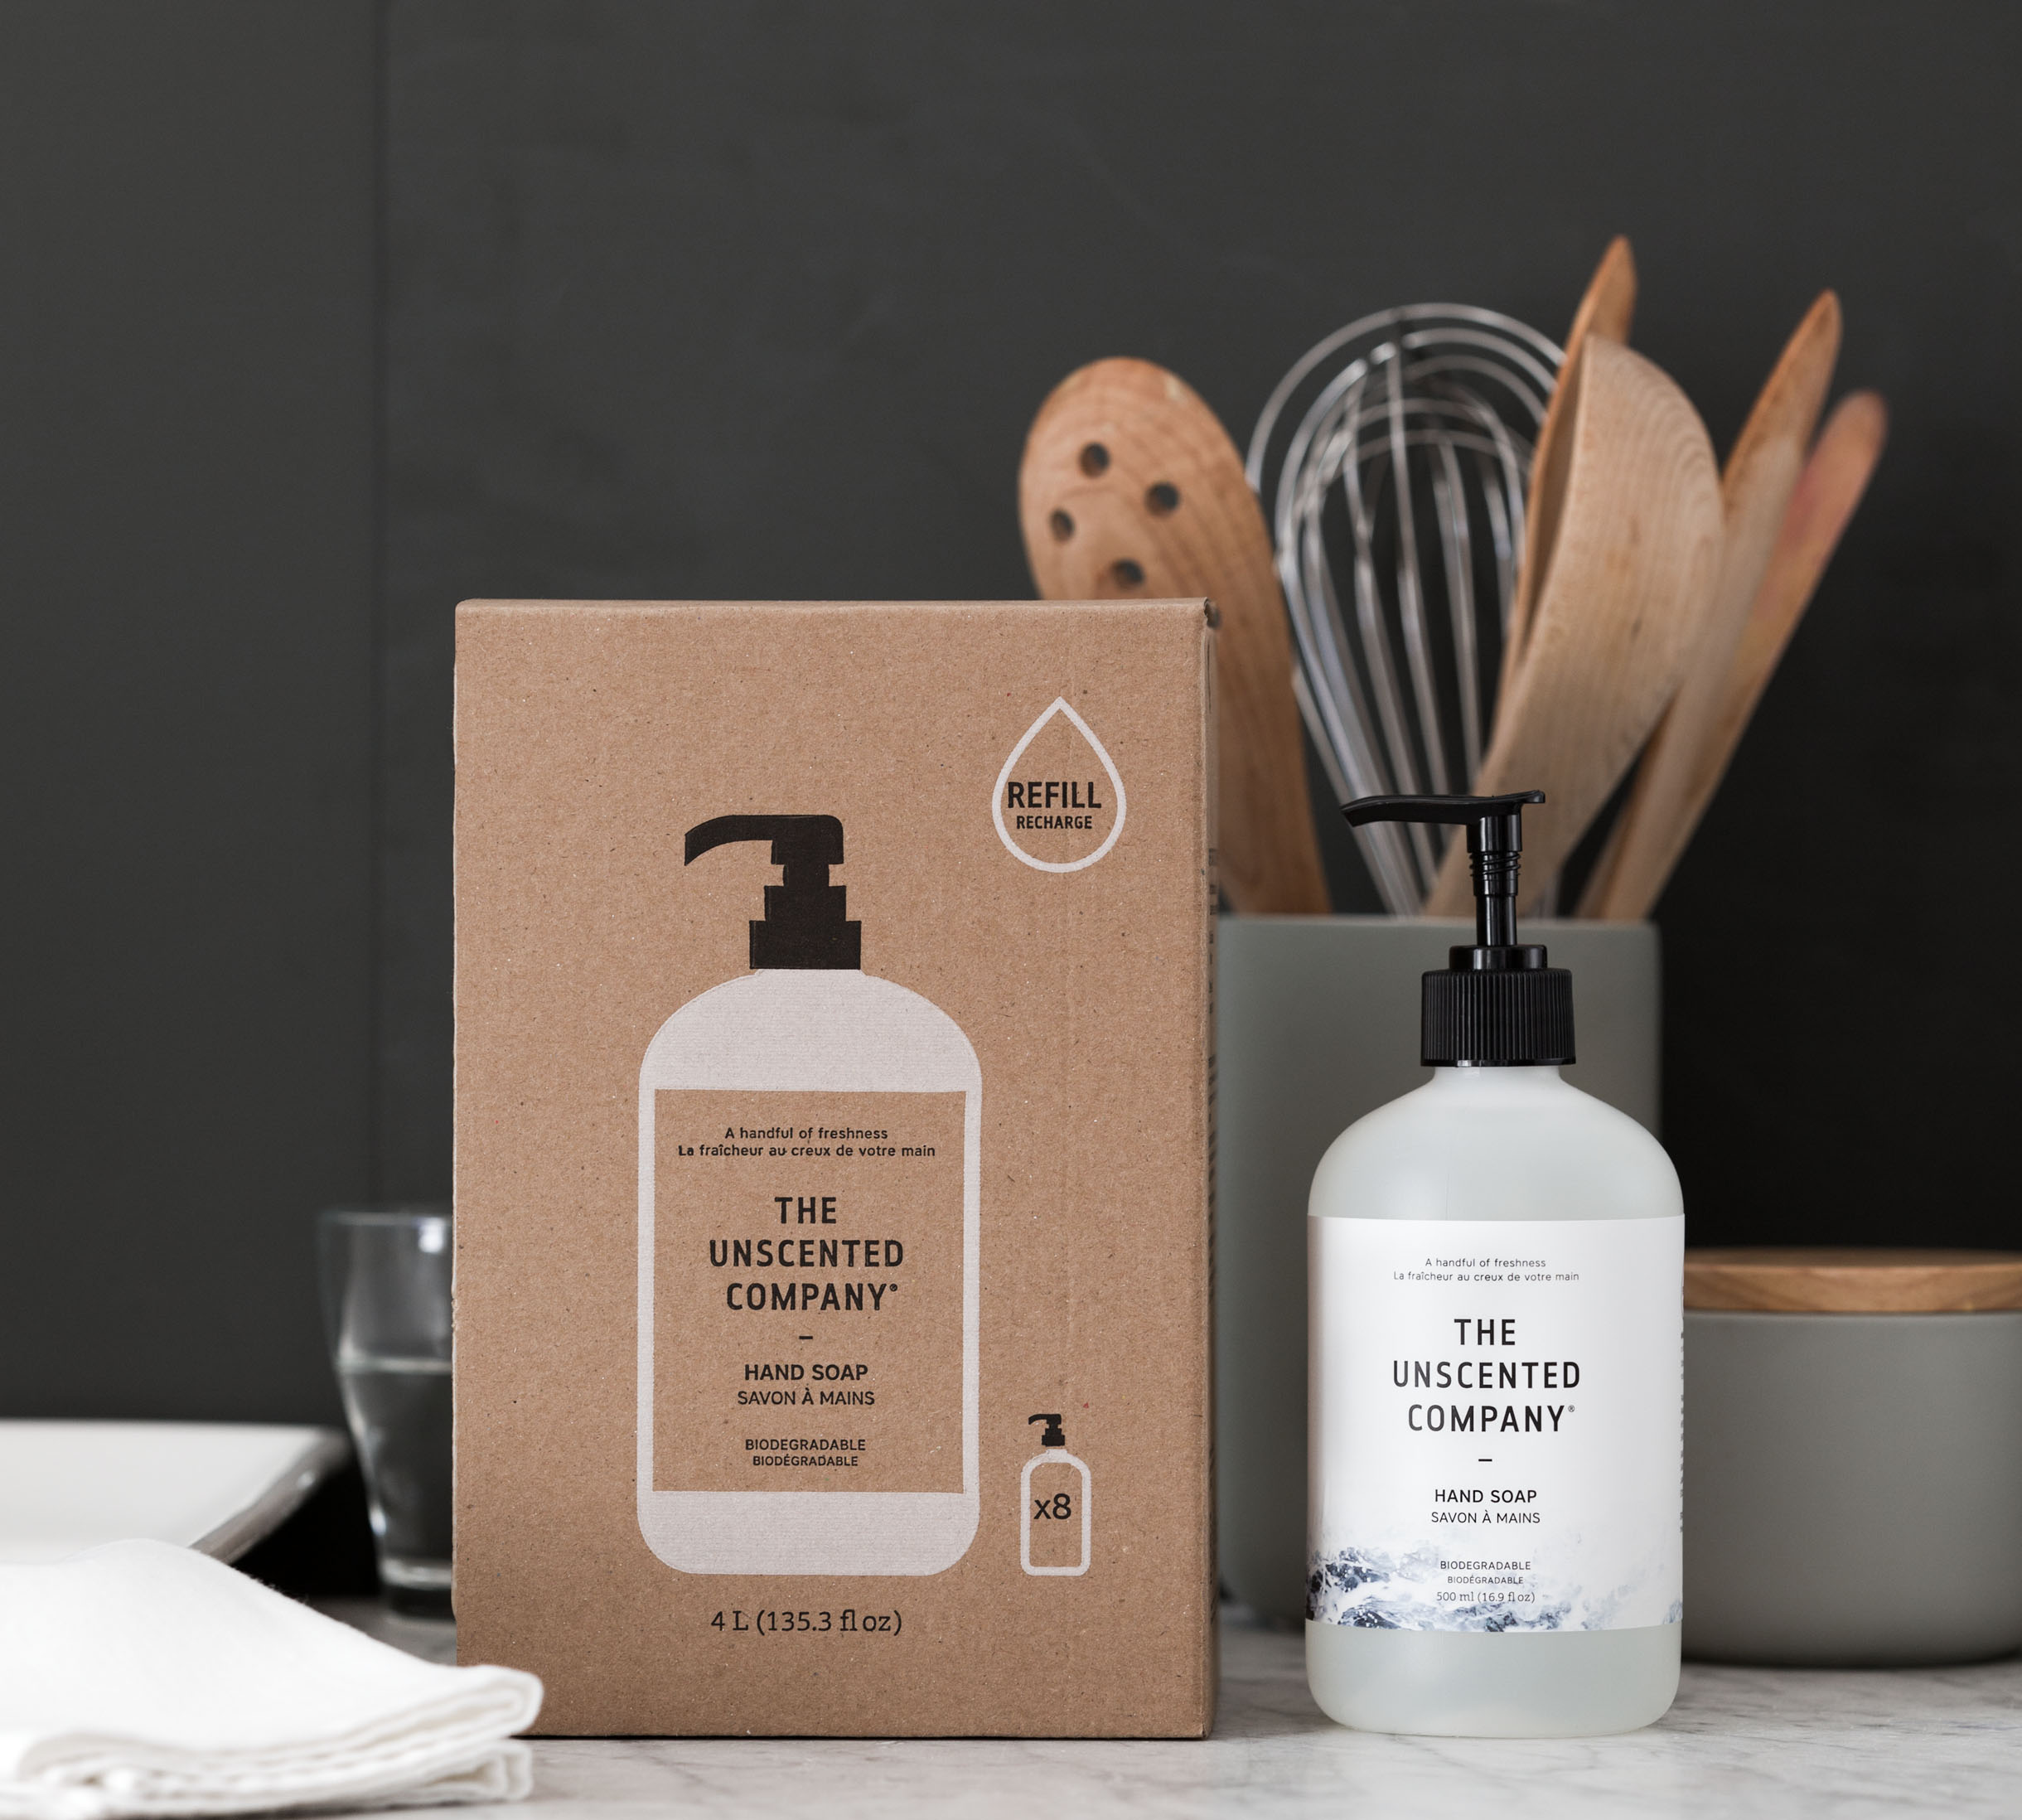 THE UNSCENTED COMPANY, SUSTAINABILITY AND PACKAGING IMPACT